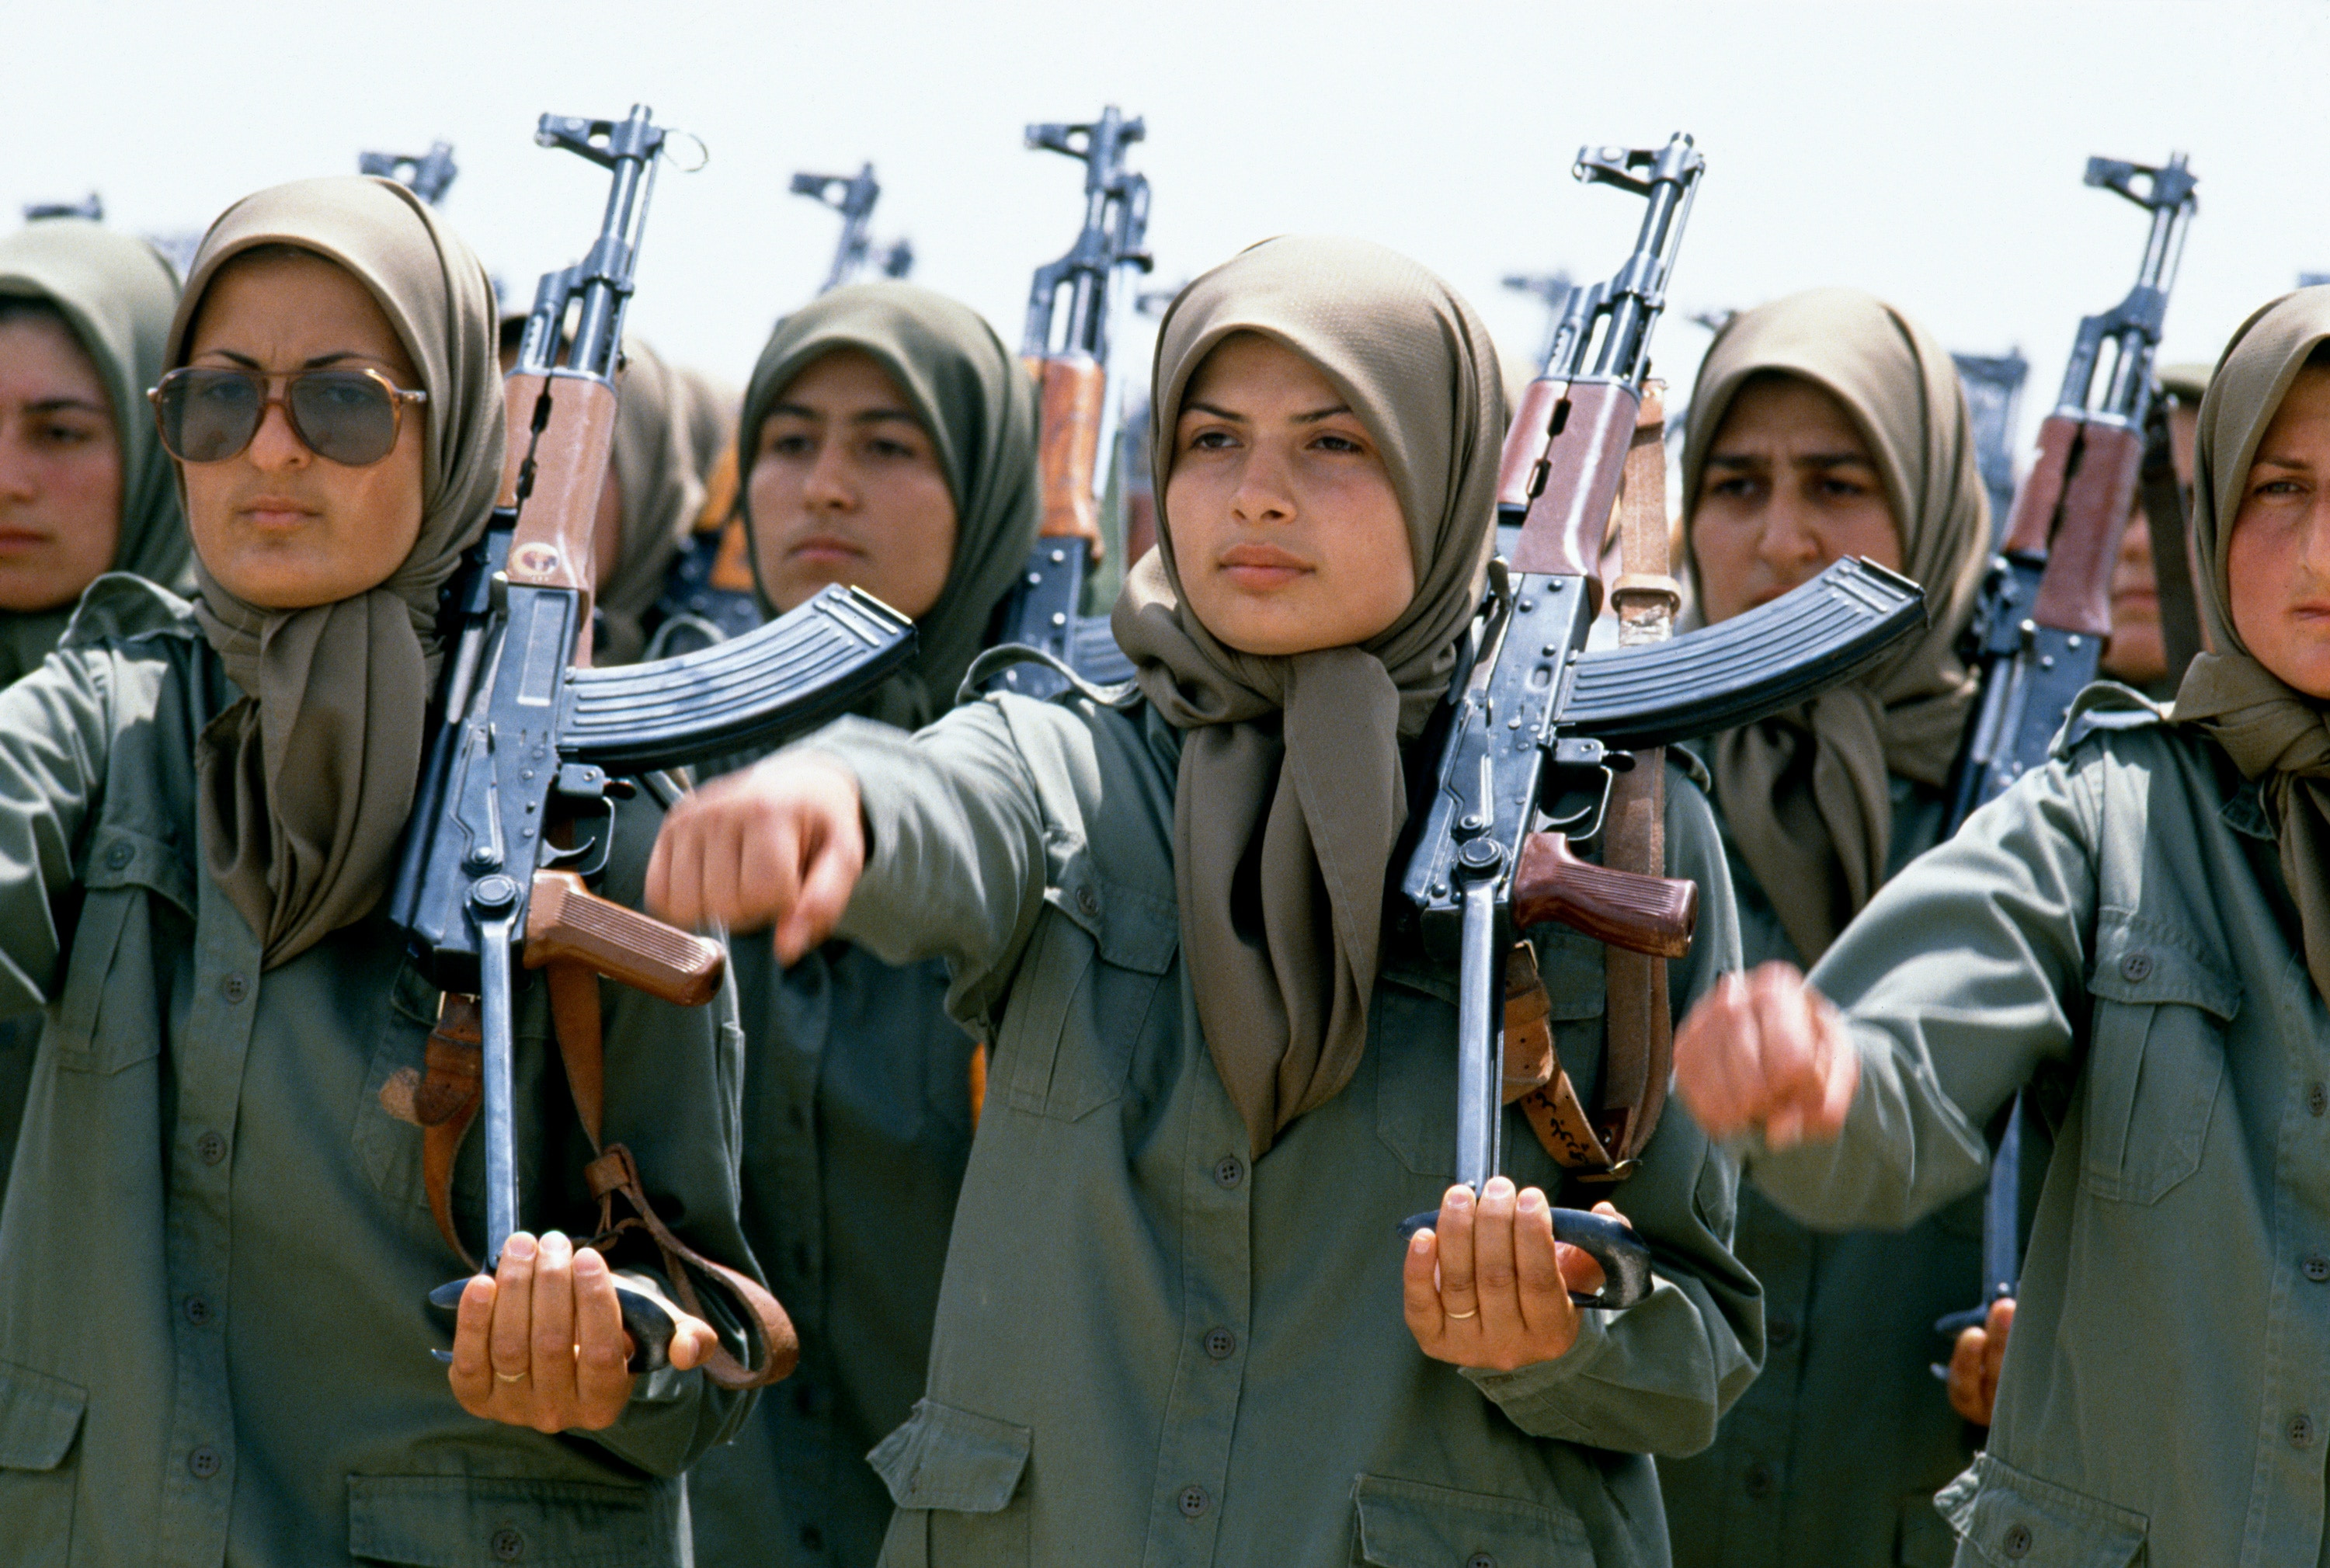 Female soldiers of the NLA (National Liberation Army of Iran) stand in formation holding AK-47s at a training camp east of Baghdad, Iraq. Women make up nearly half of the NLA, the armed wing of the Mujahideen Khalq Organization, an Iranian dissident group.